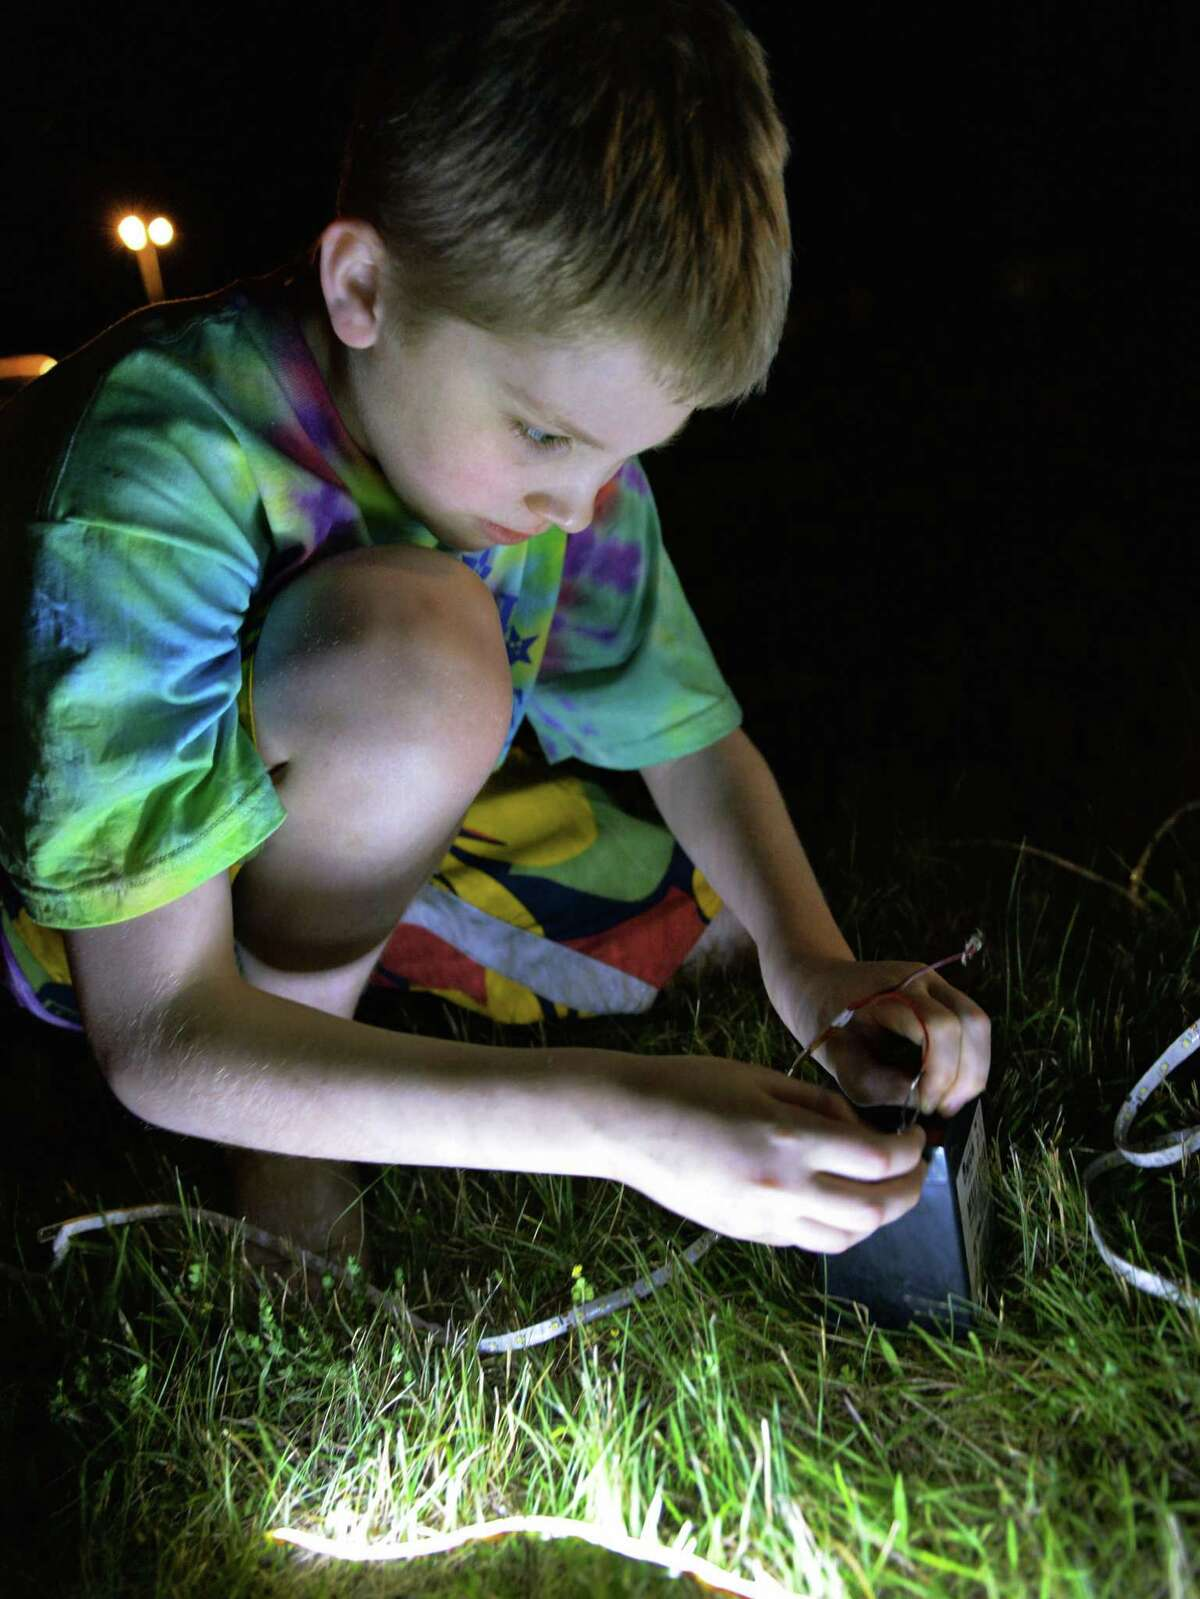 Mackinly Adams, 13, of Pittsburgh, Penn., who suffers from a rare skin disease that makes it dangerous for him to be exposed to sunlight, hooks up a string of LED lights at Camp Sundown in Craryville, N.Y., Friday night July 12, 2013. (John Carl D'Annibale / Times Union)